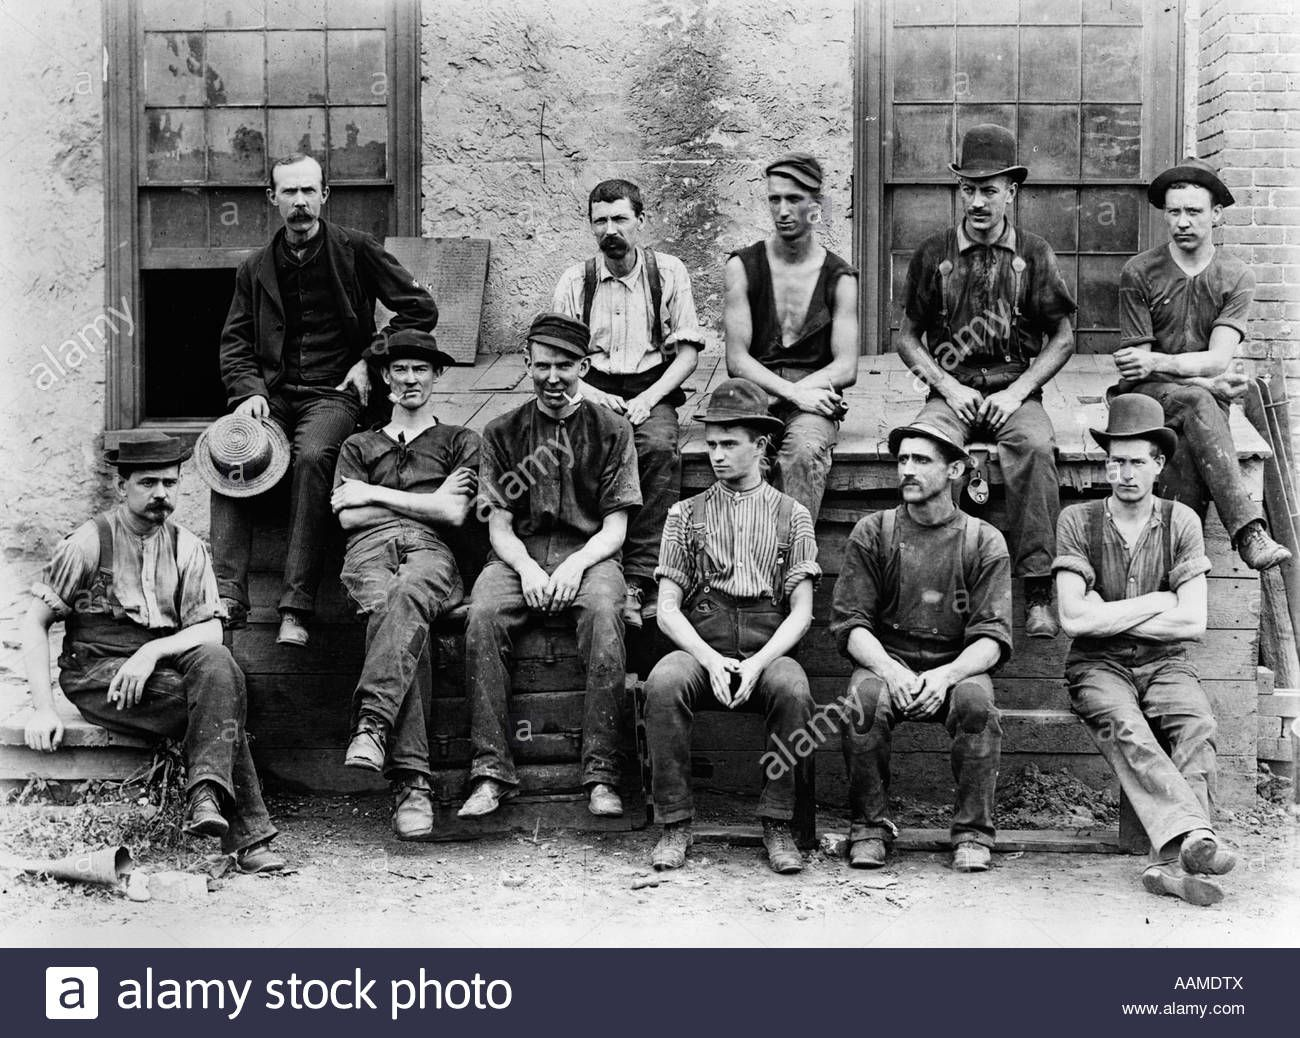 1890s 1900s Group Of 11 Factory Workers Seated Outside Of Building Oversized Art Victorian Photos Steampunk Couture